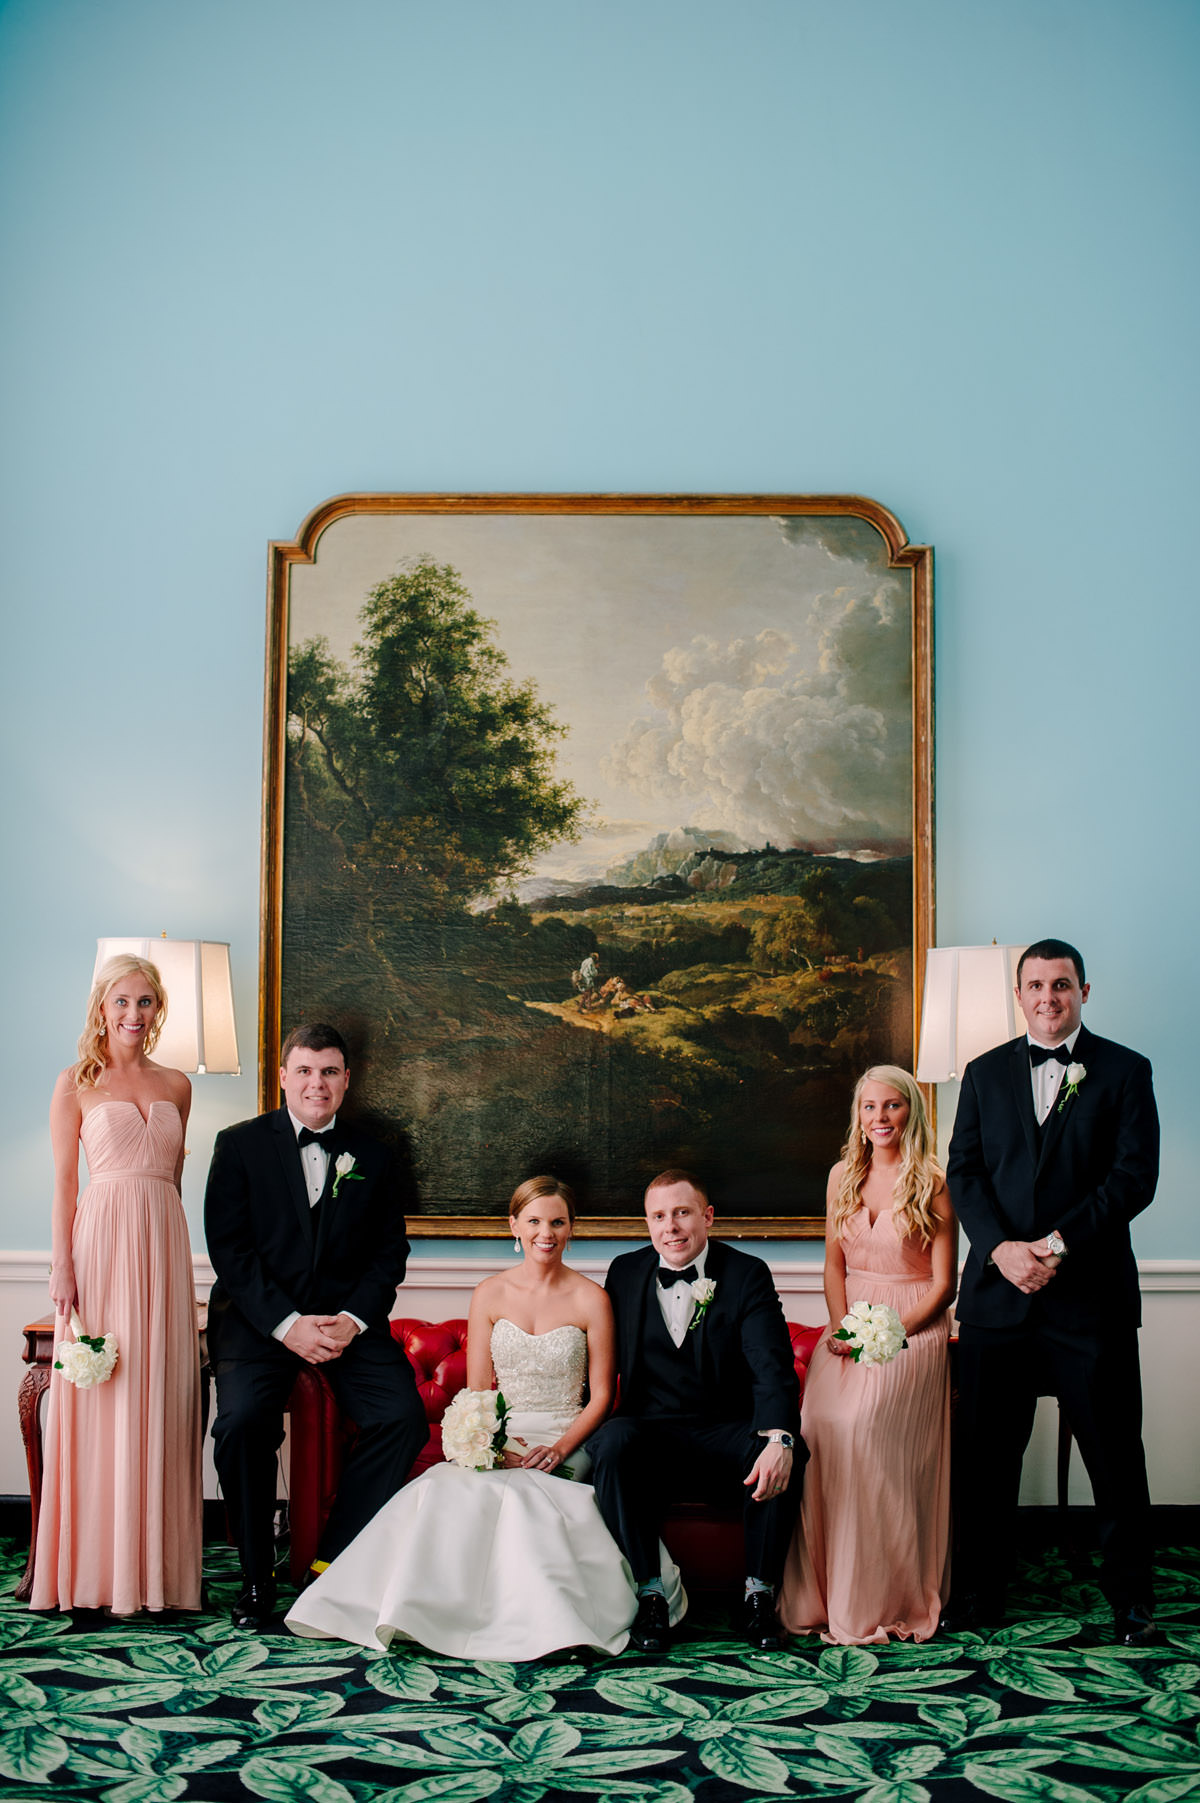 classic sophisticated wedding party portrait dorothy draper carleton varney design decor greenbrier resort west virginia by best photographers the oberports